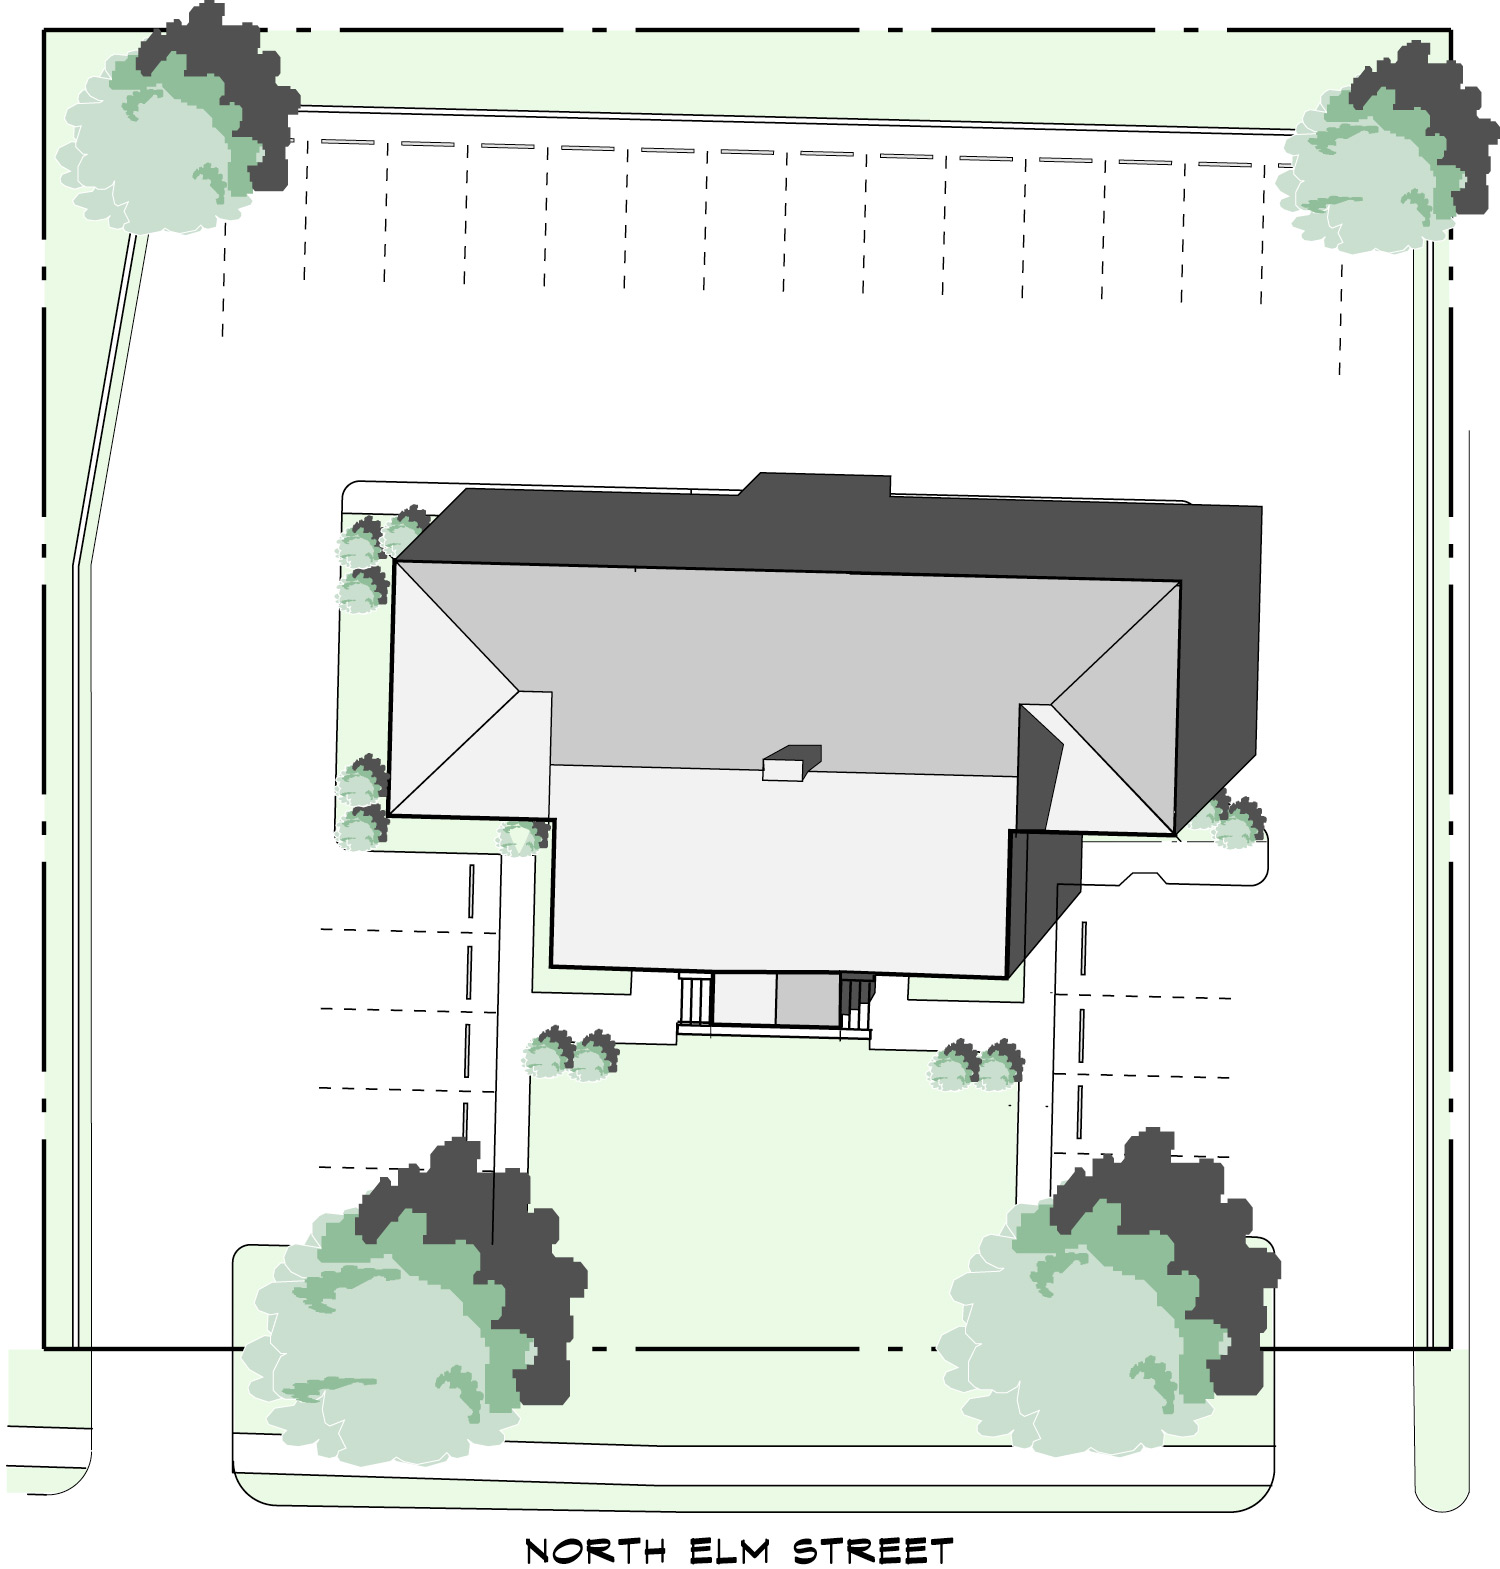 pilot-financial-site-plan-frank-cheney-architects.jpg